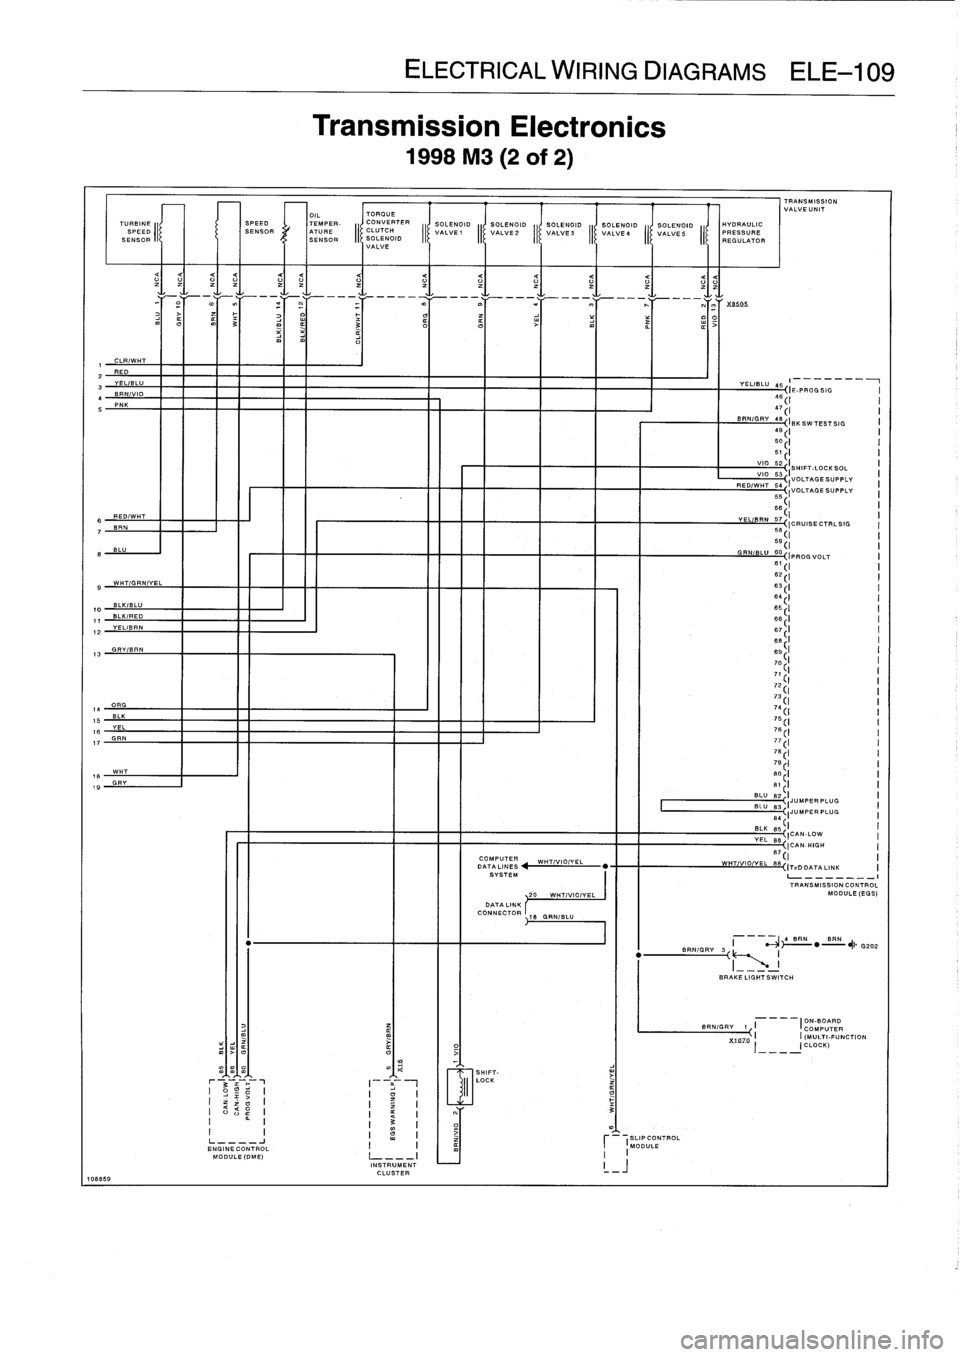 Snap Bmw Reverse Light Wiring Diagram 32 Images E36 1996 318i Workshop Manual